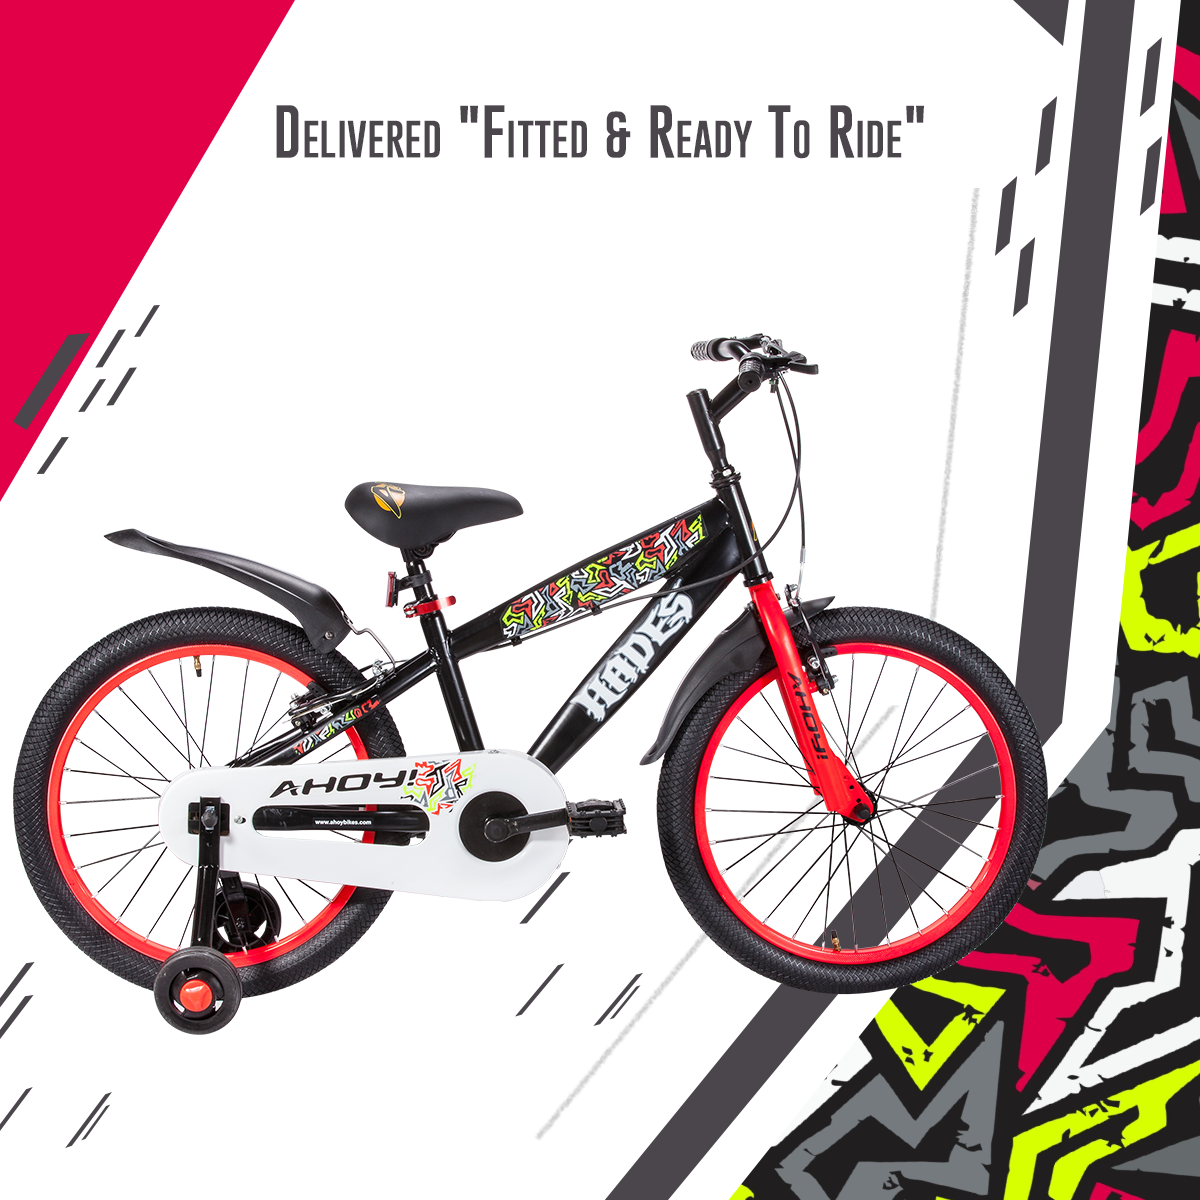 Best Cycle Brands In India Ahoybikes Com Provide Top Of The Line